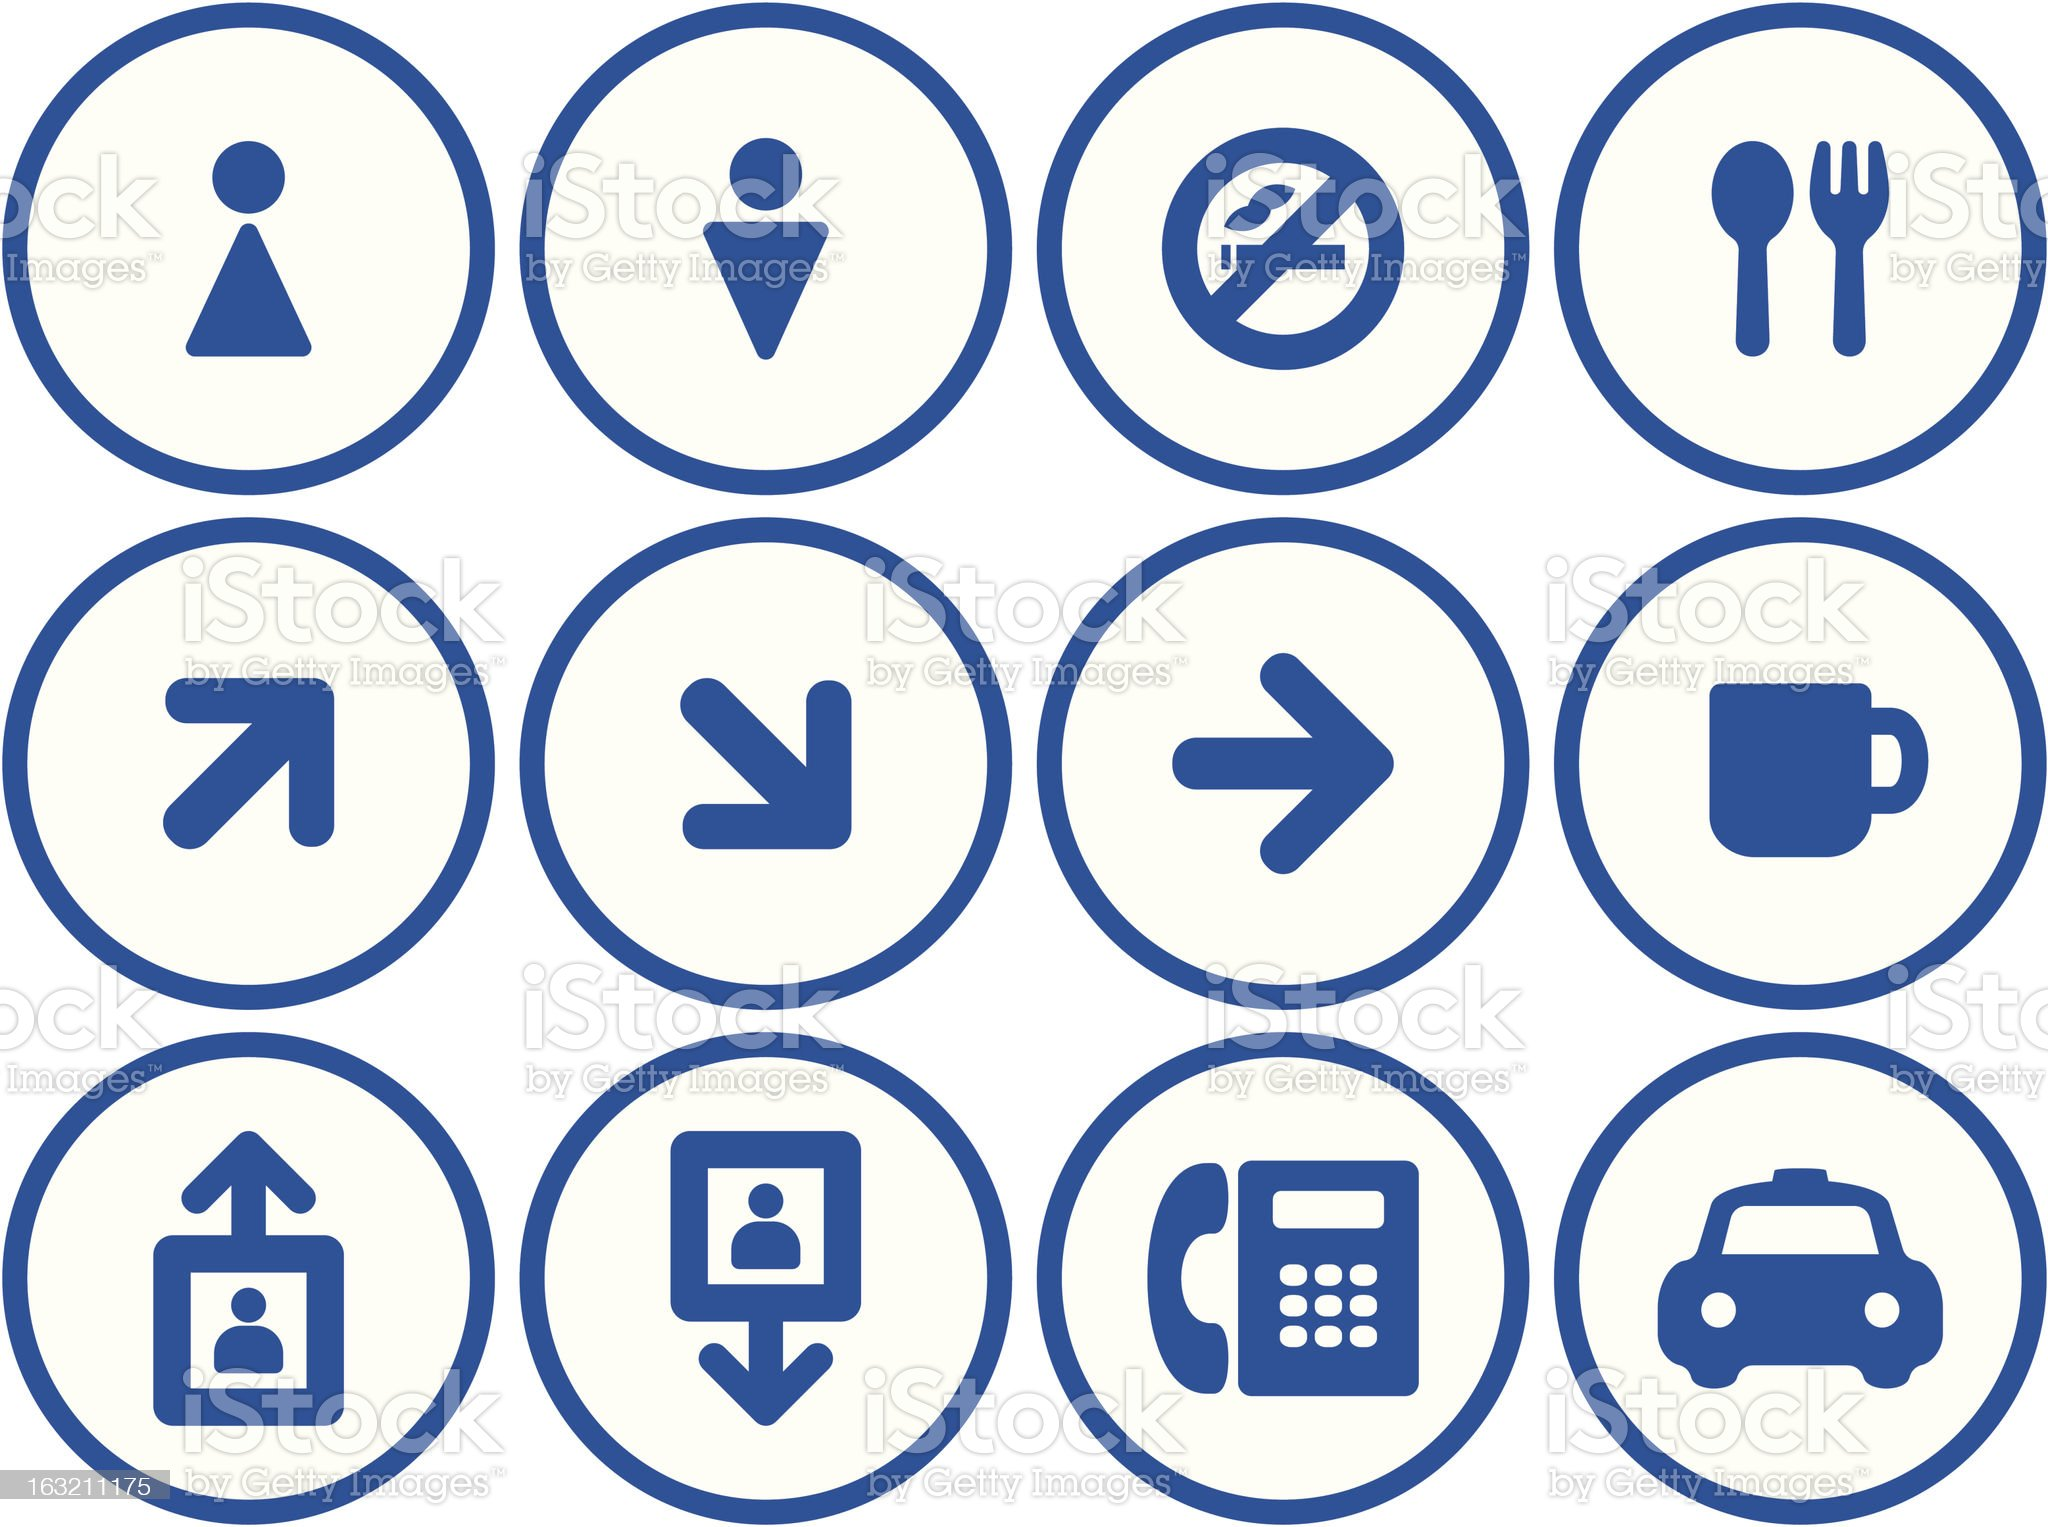 Useful Vector Icons Set - Shopping mall signs royalty-free stock vector art